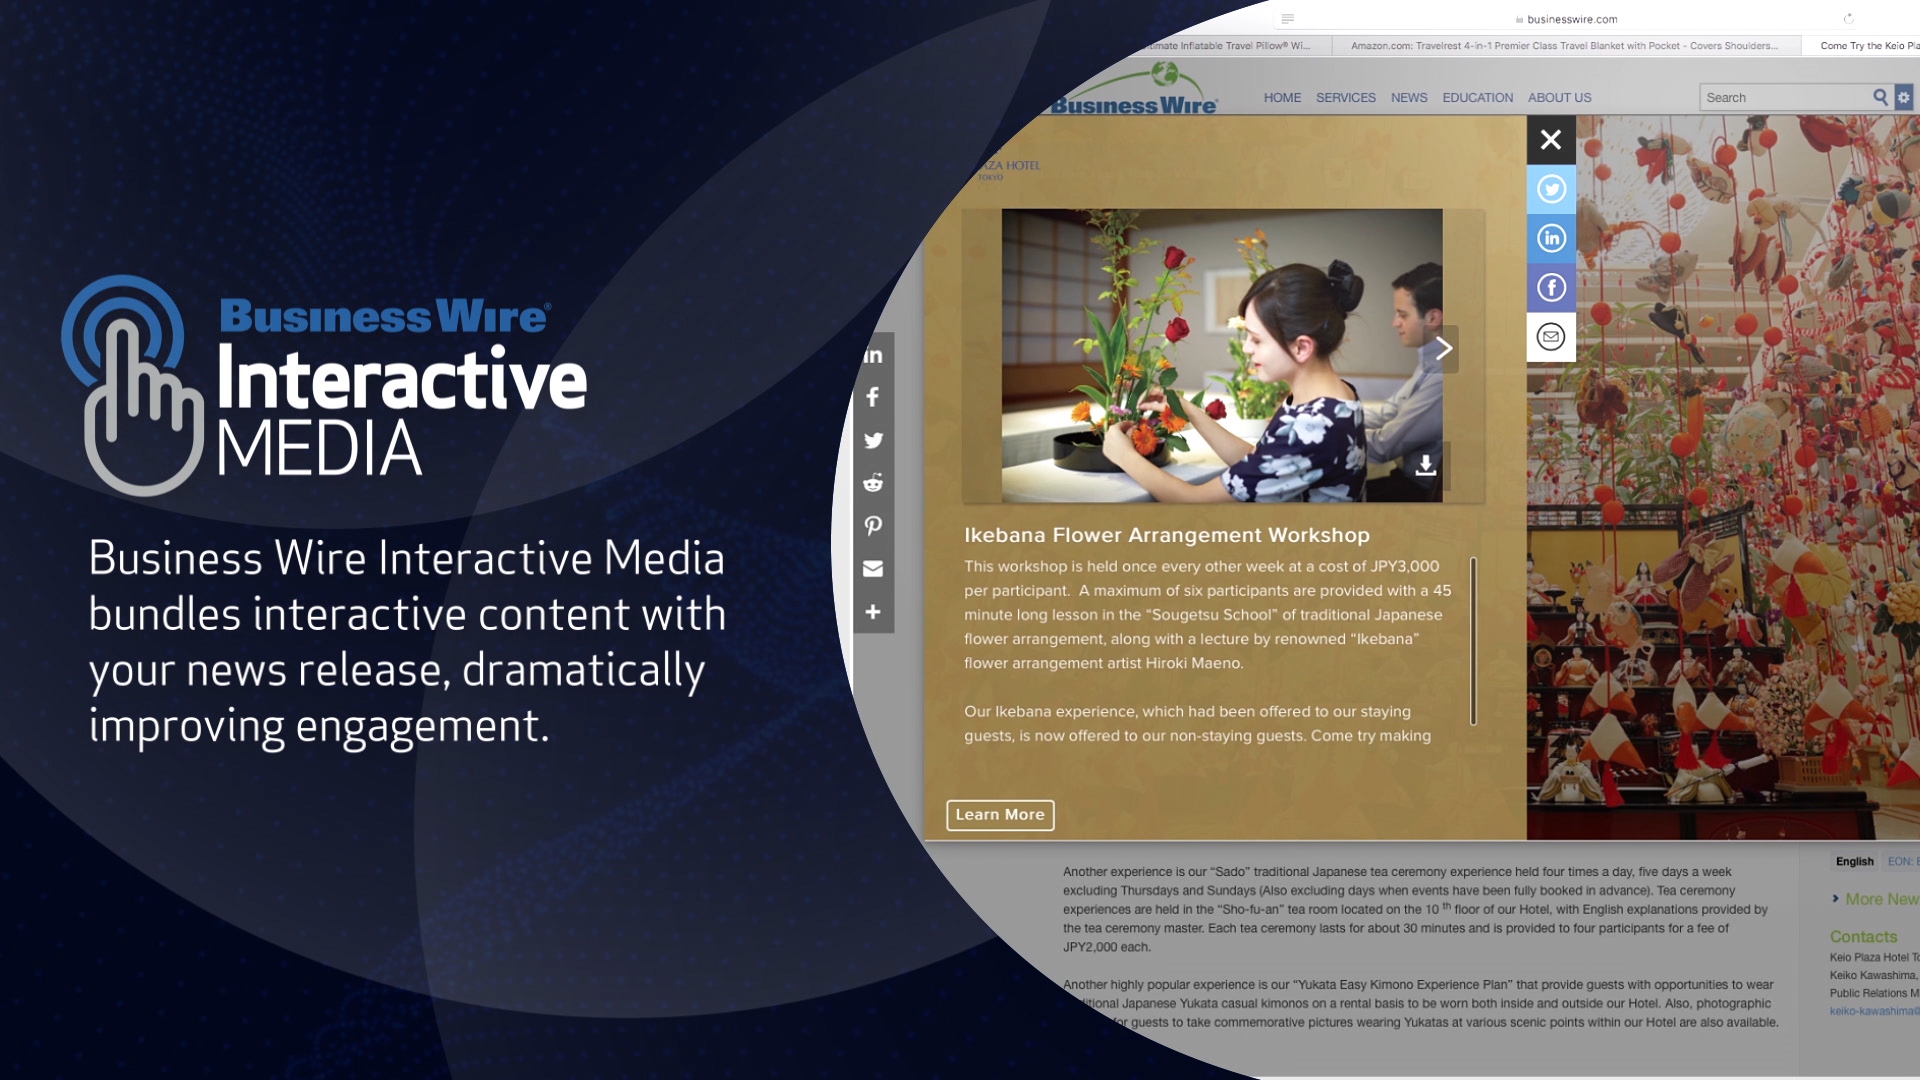 Business Wire Launches New Interactive Media Service (Photo: Business Wire)